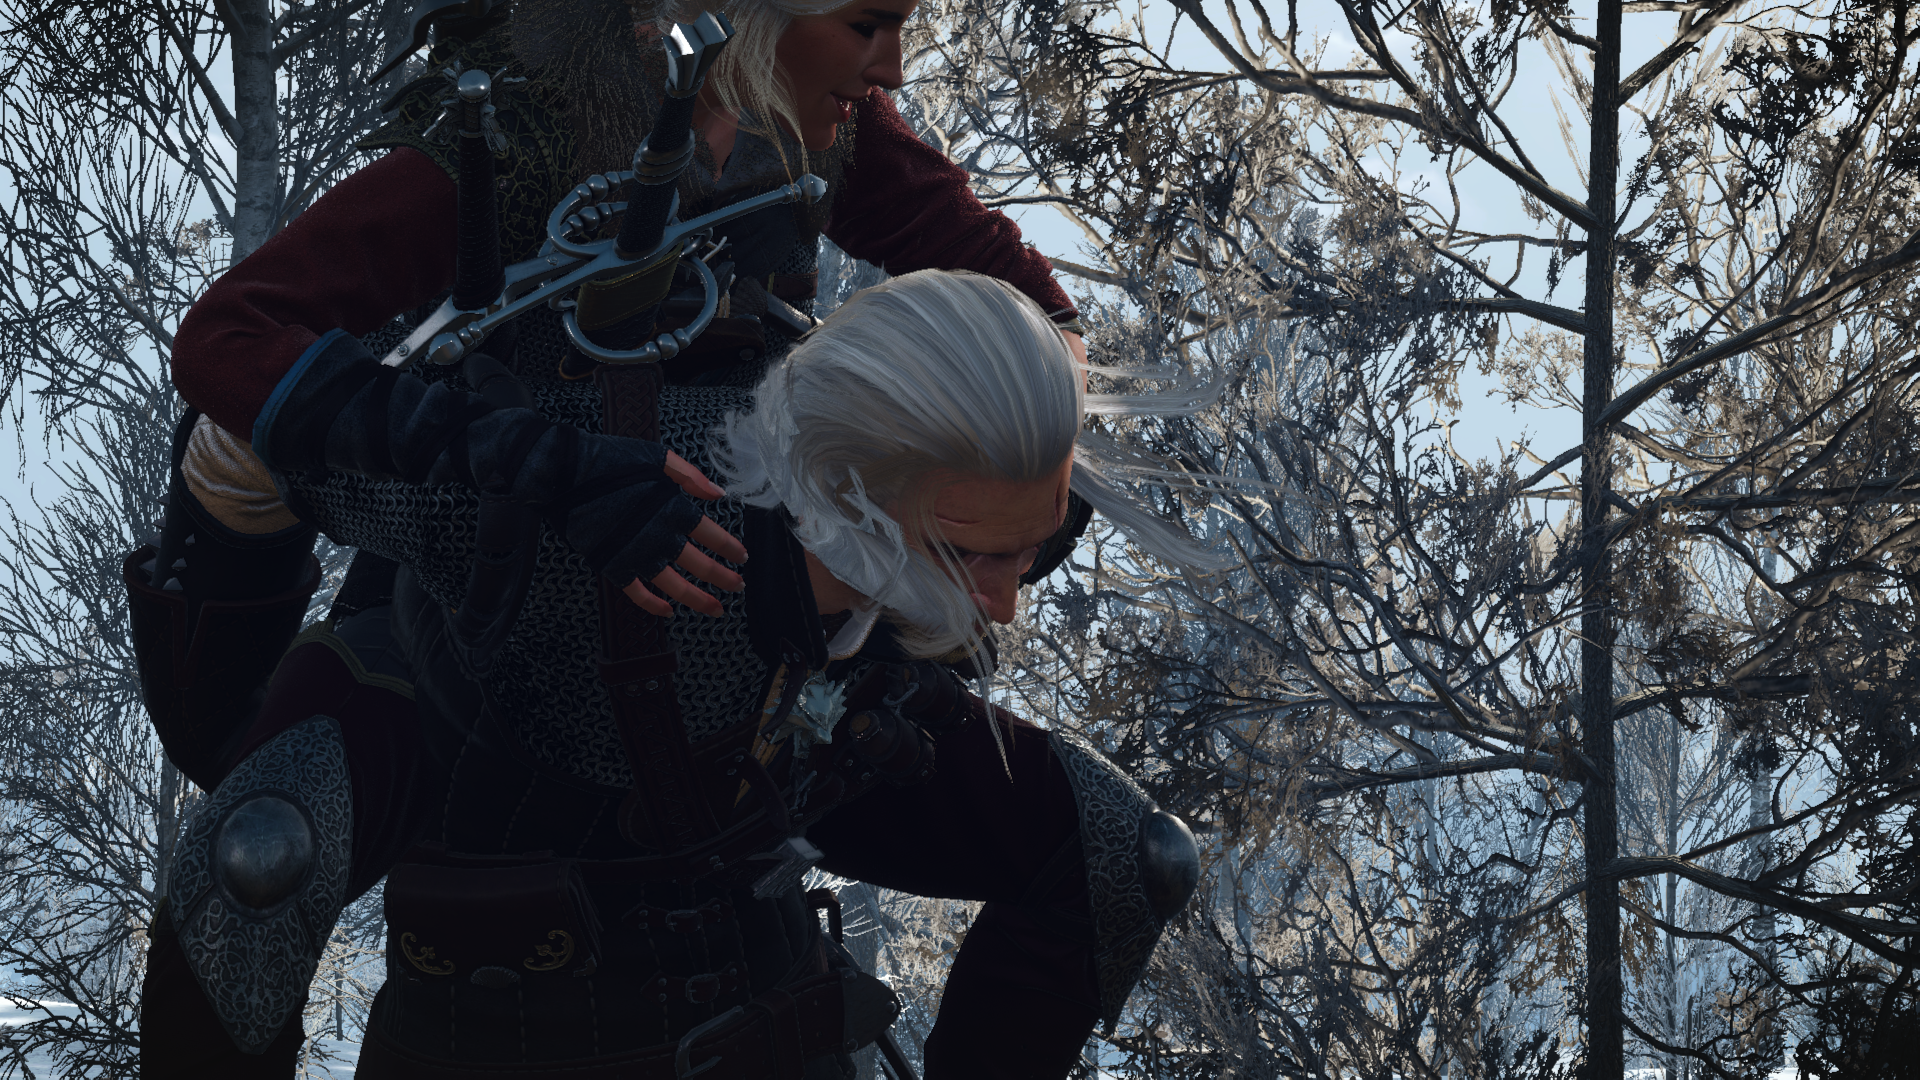 The Witcher 3 18.08.2019 22_50_09.png - Witcher 3: Wild Hunt, the